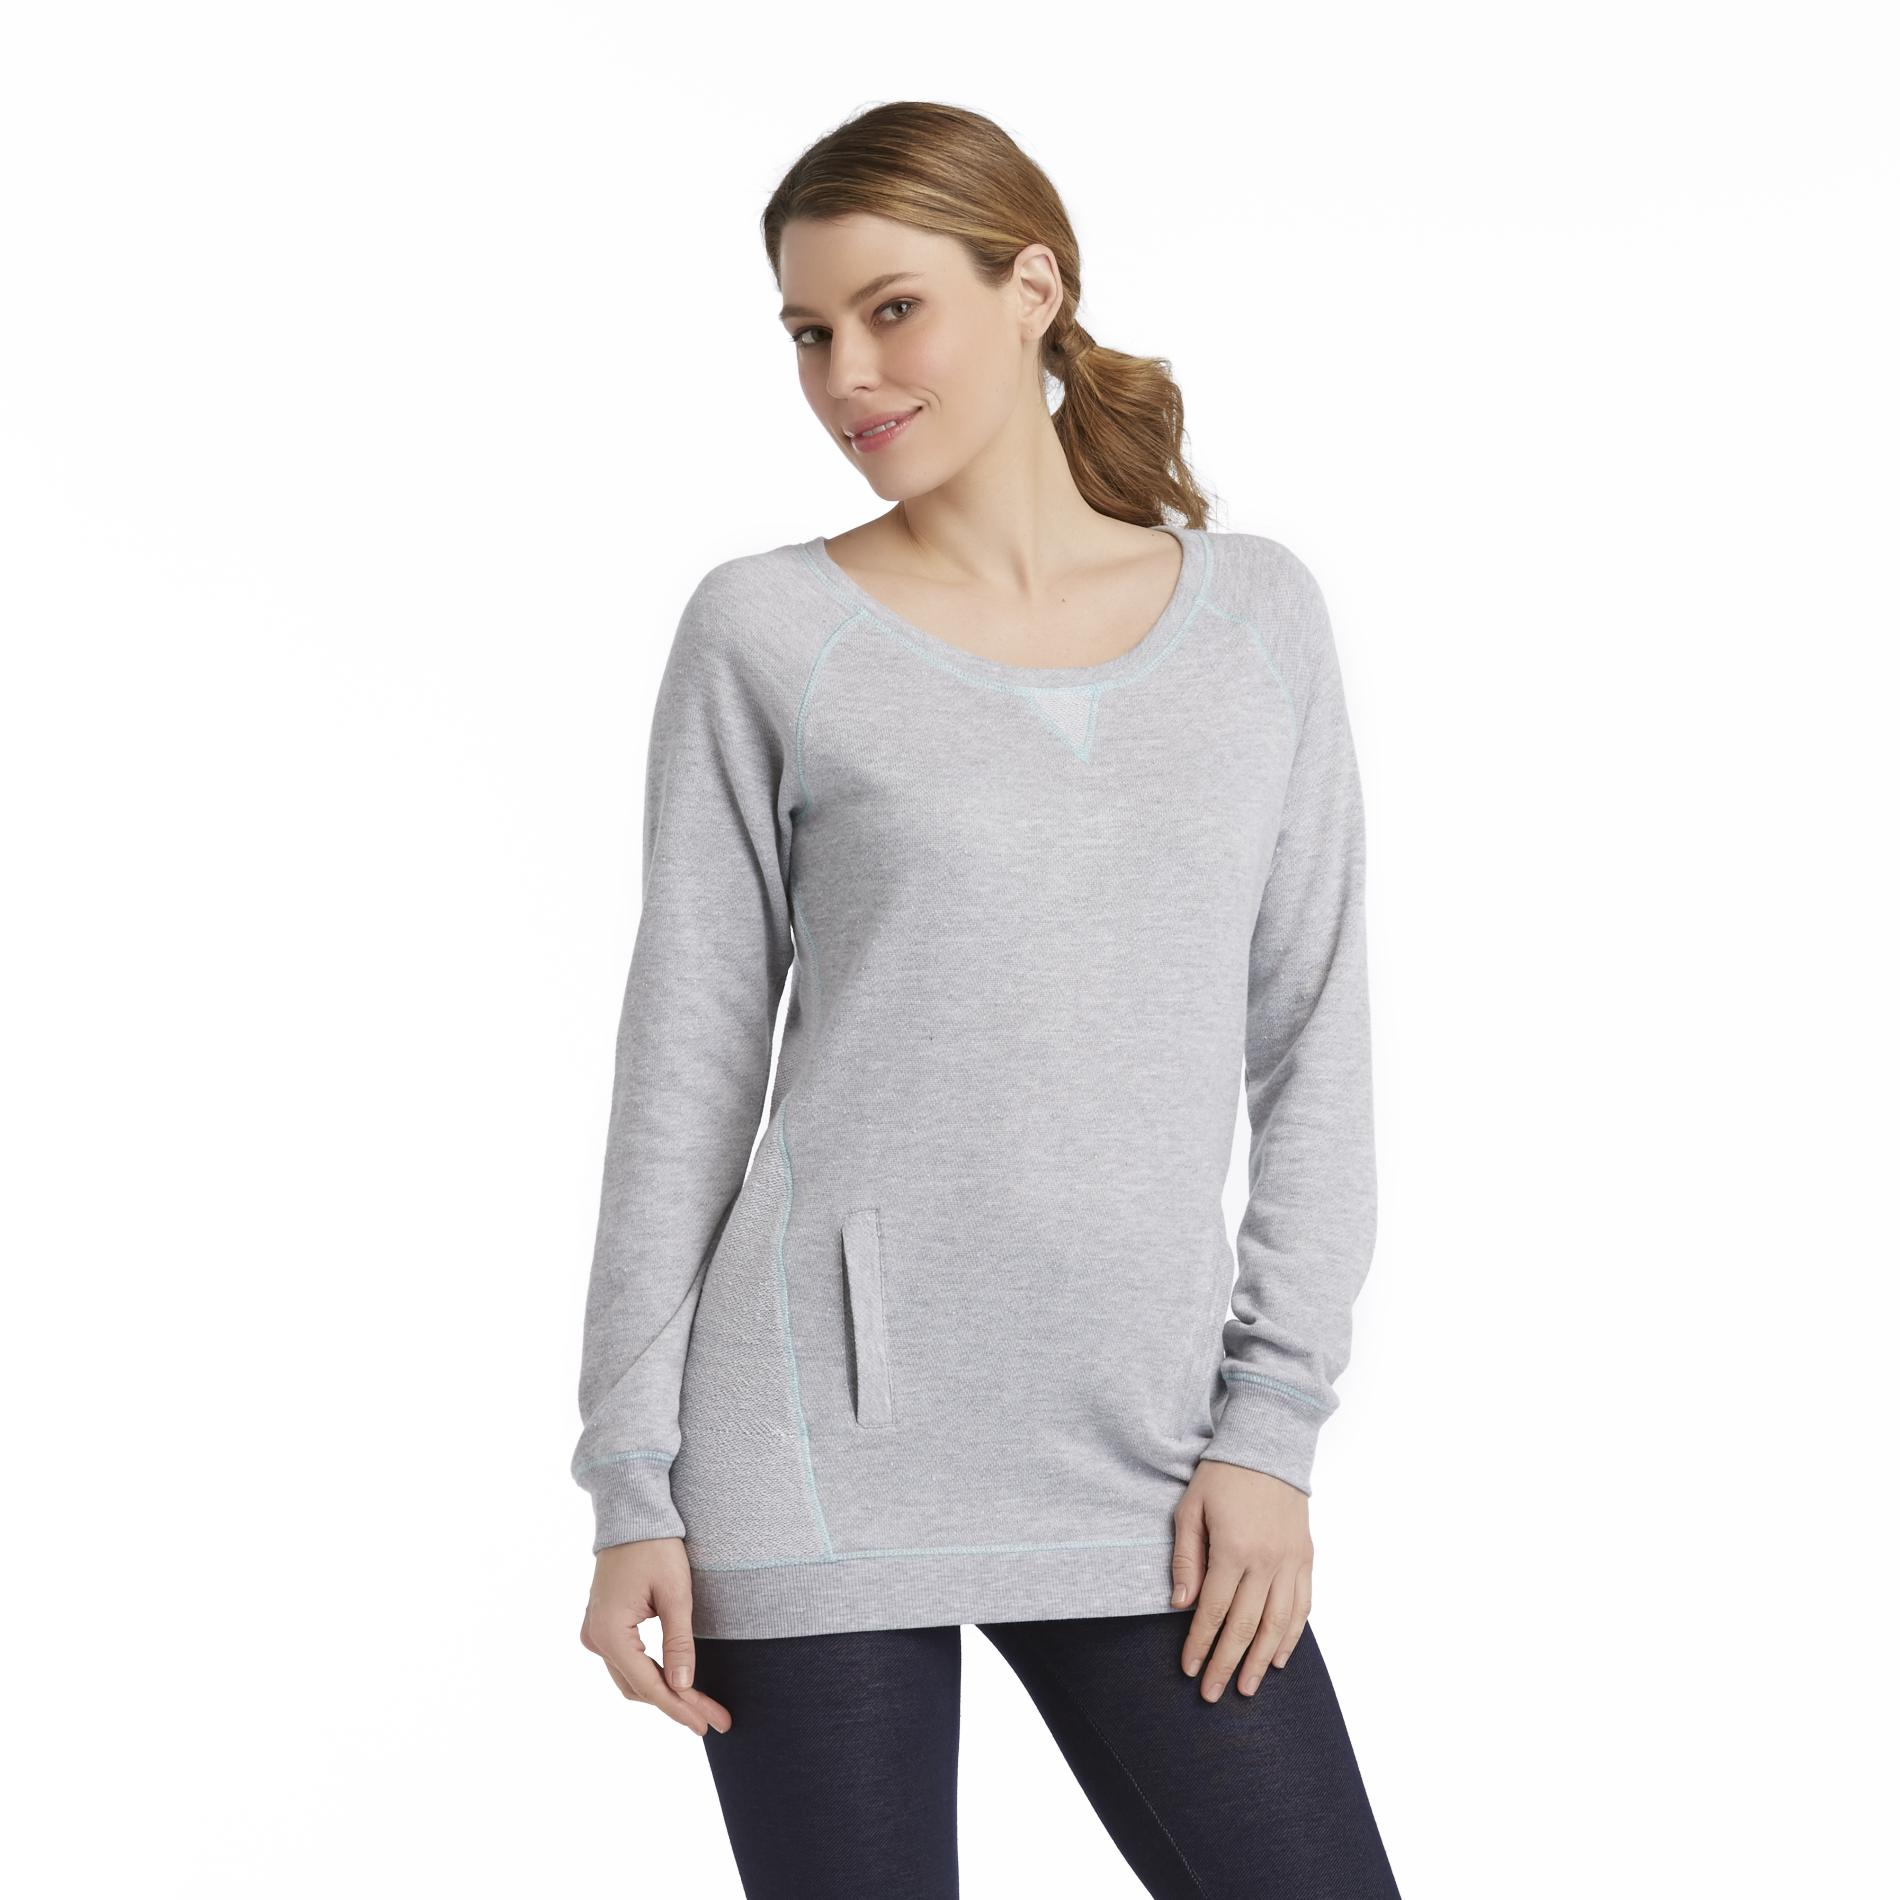 Joe by Joe Boxer Women's French Terry Tunic Top at Sears.com